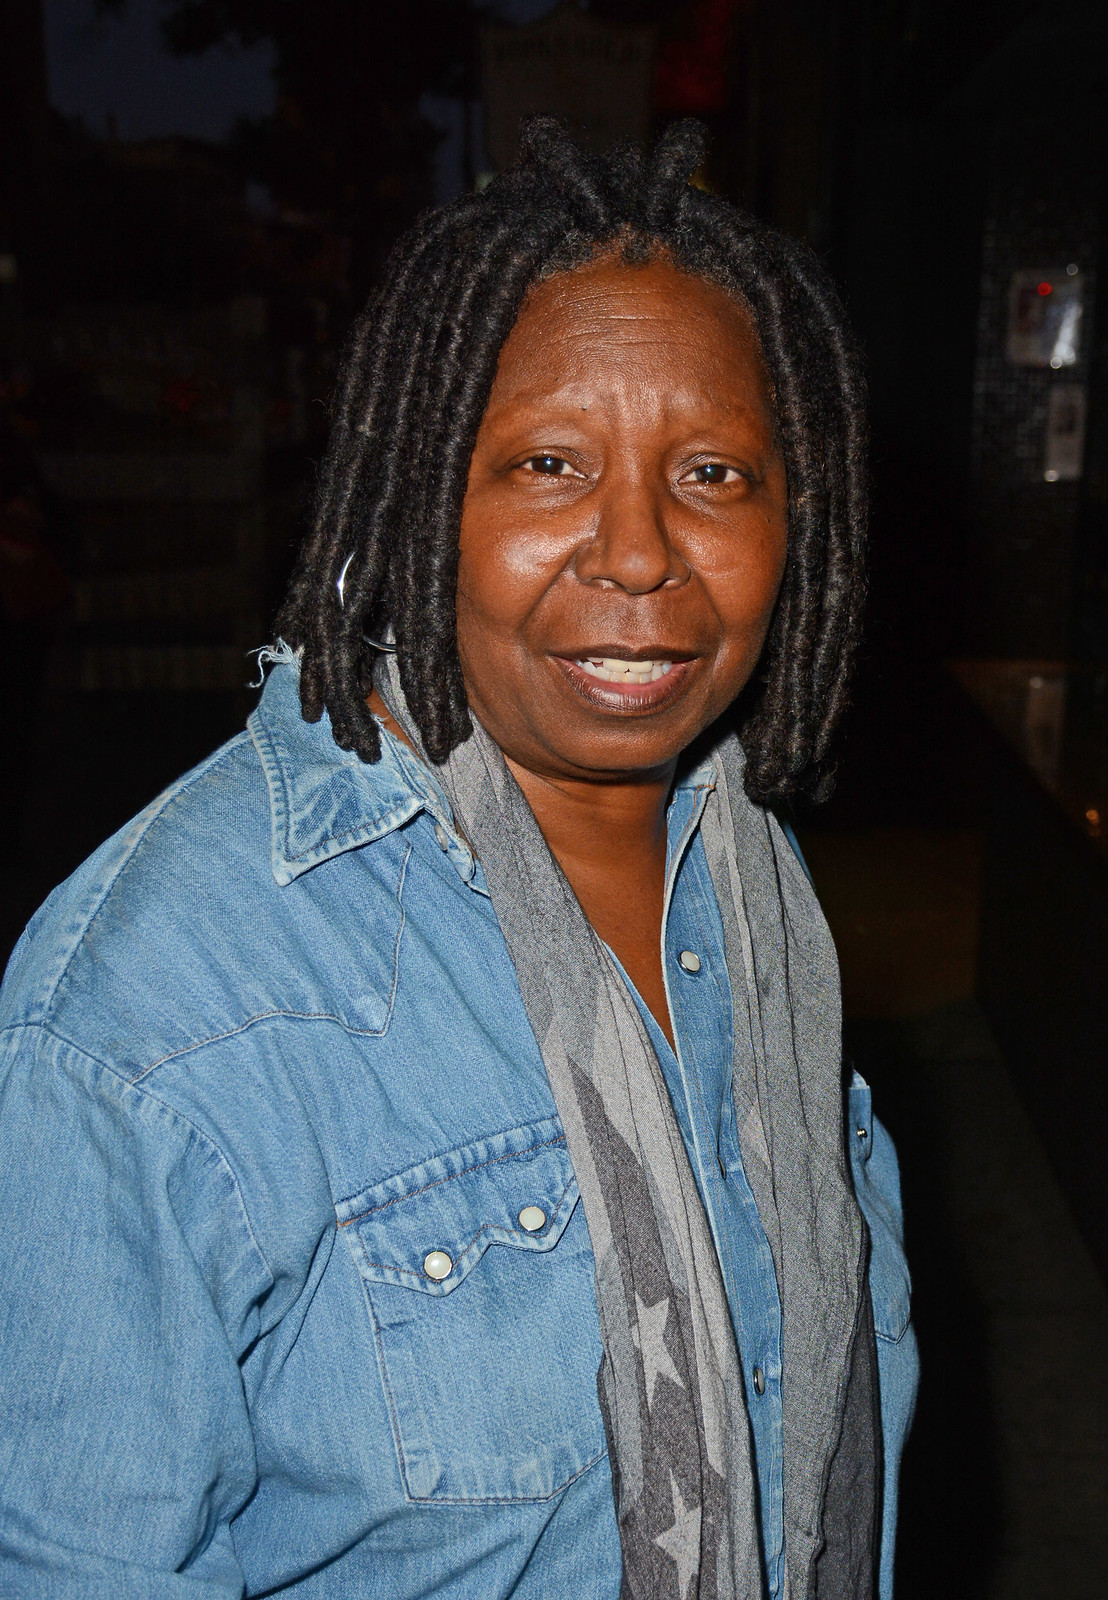 whoopi goldberg seen out in nyc 9/24/15. | lipstick alley